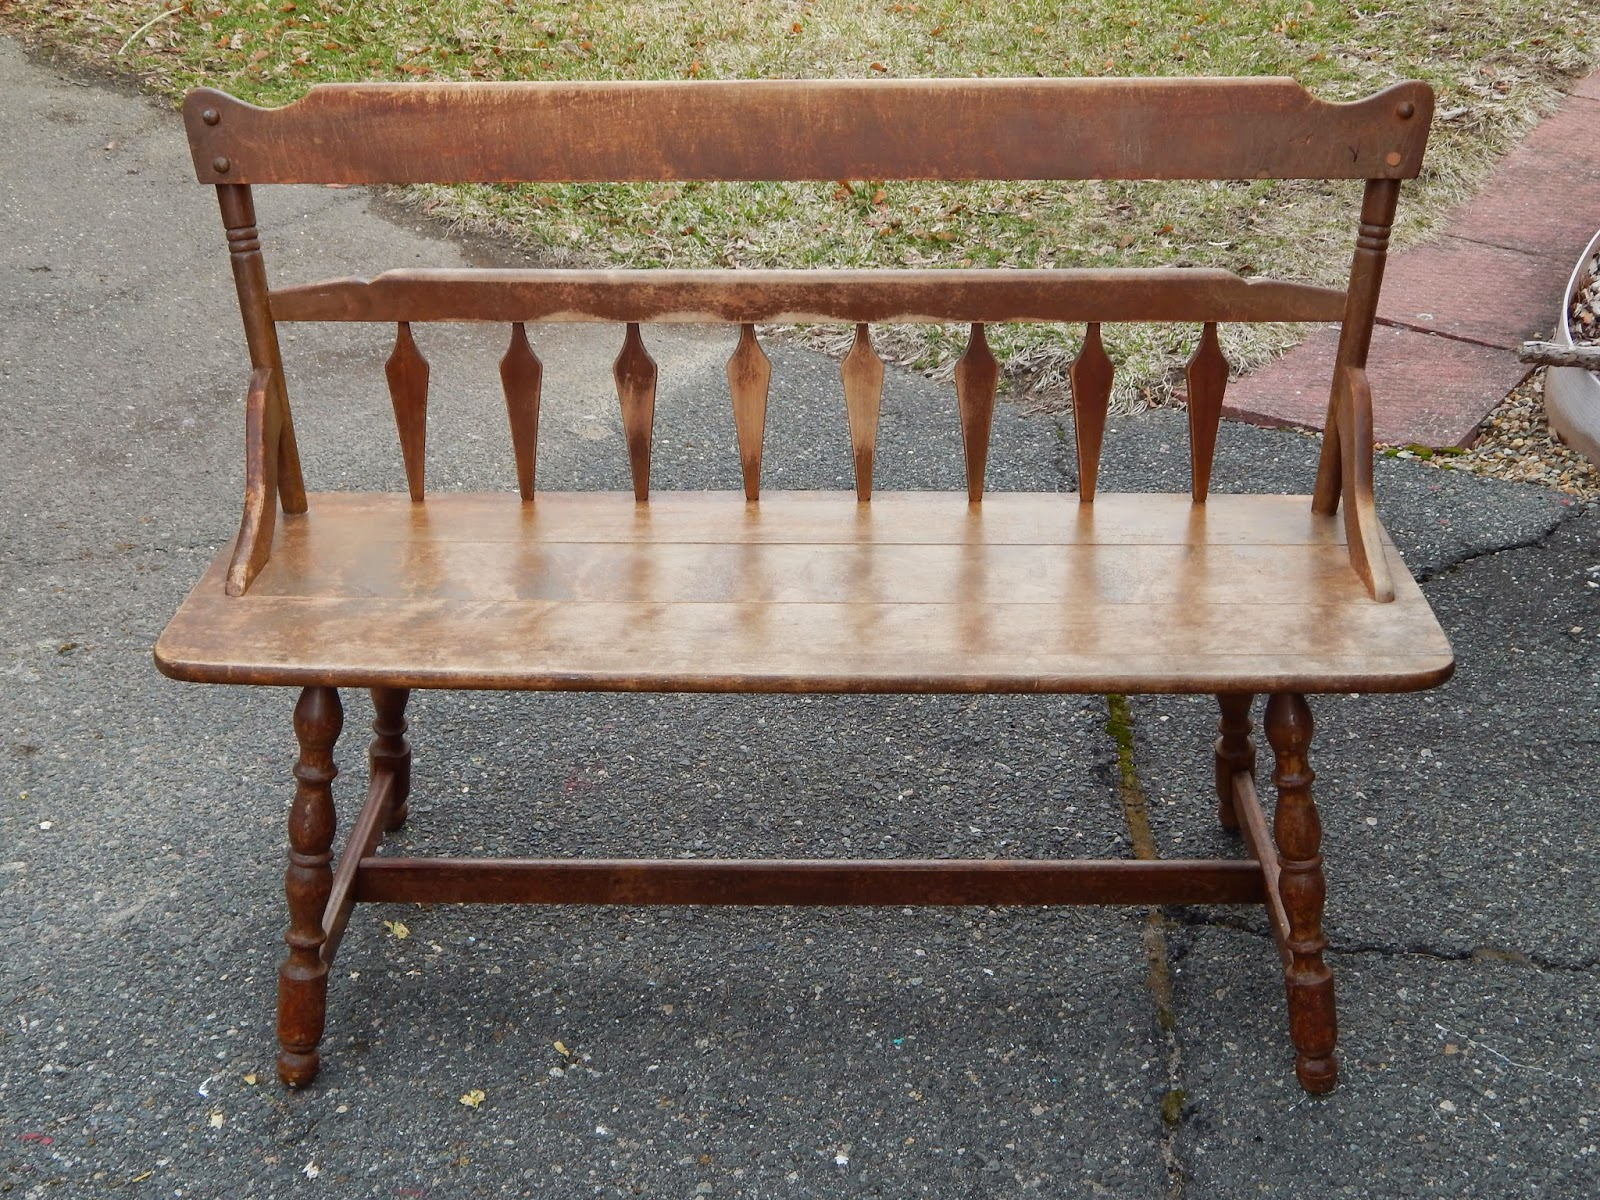 Antique wood bench with back - Ever Since I Painted The Perfect Red Vintage Dresser Back In January I Have Been Dying To Use General Finishes Holiday Red Again This Brand Is Seriously My